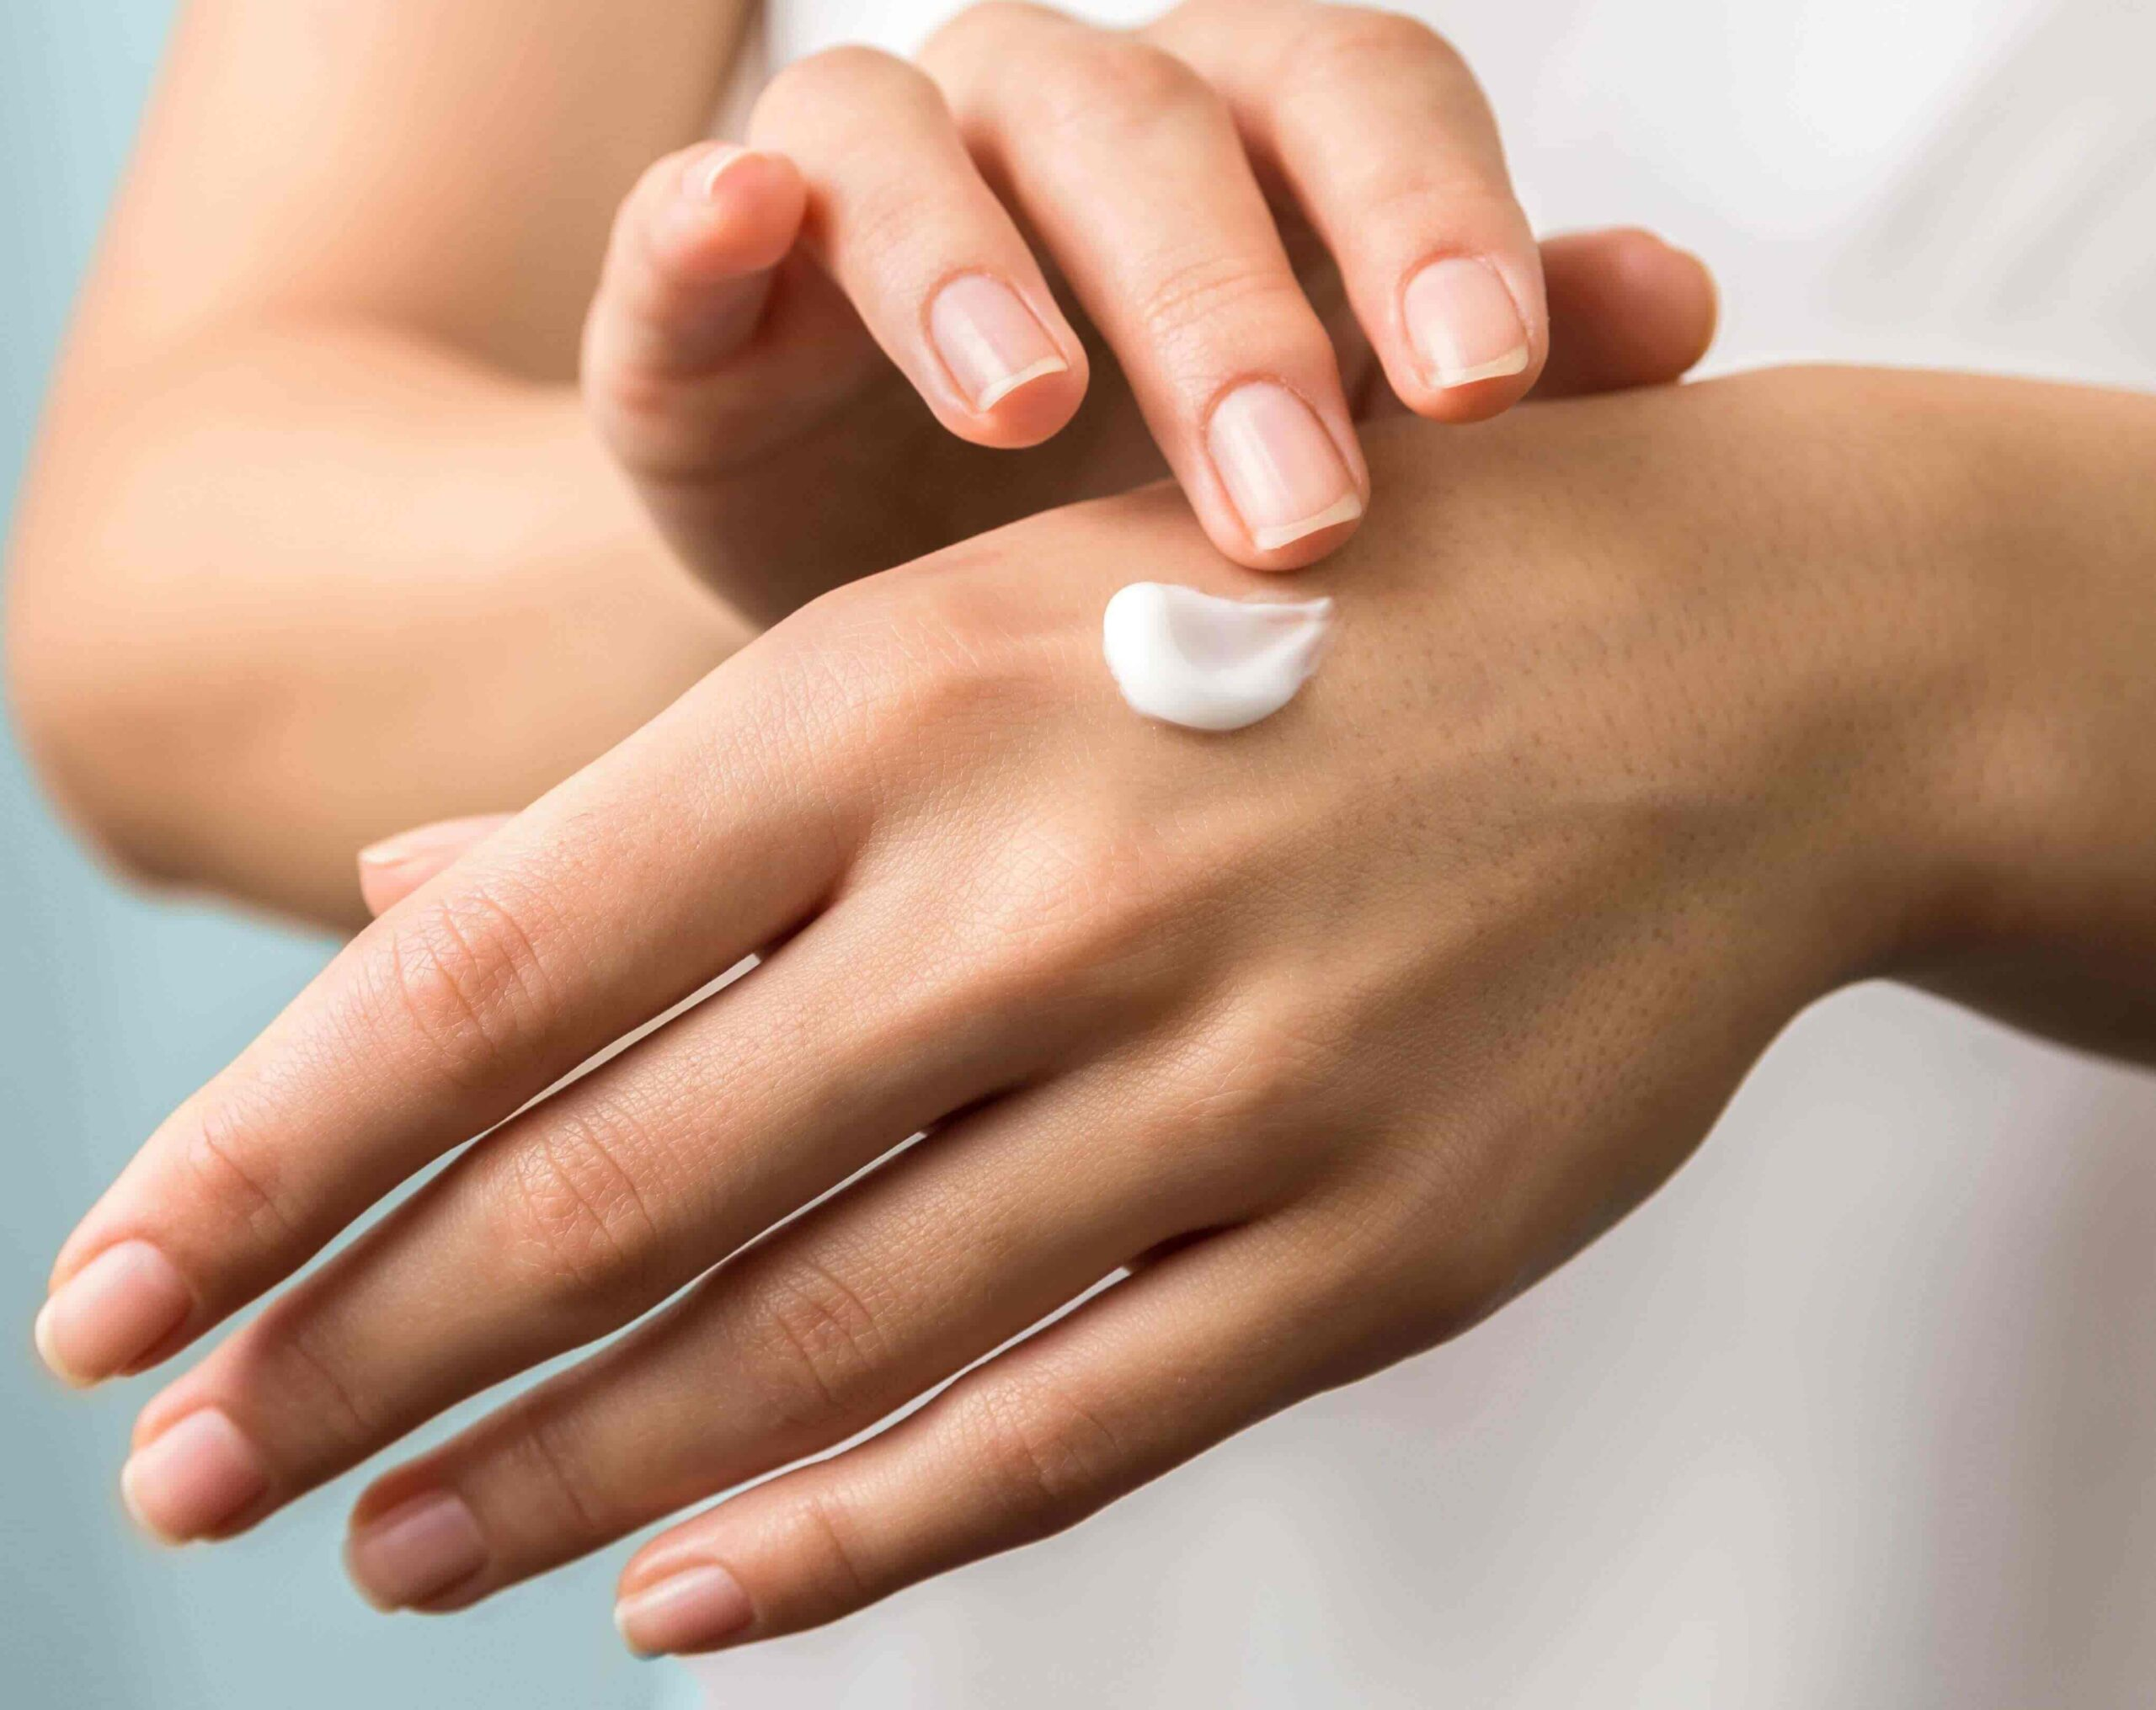 Signs of Aging From Your Hands